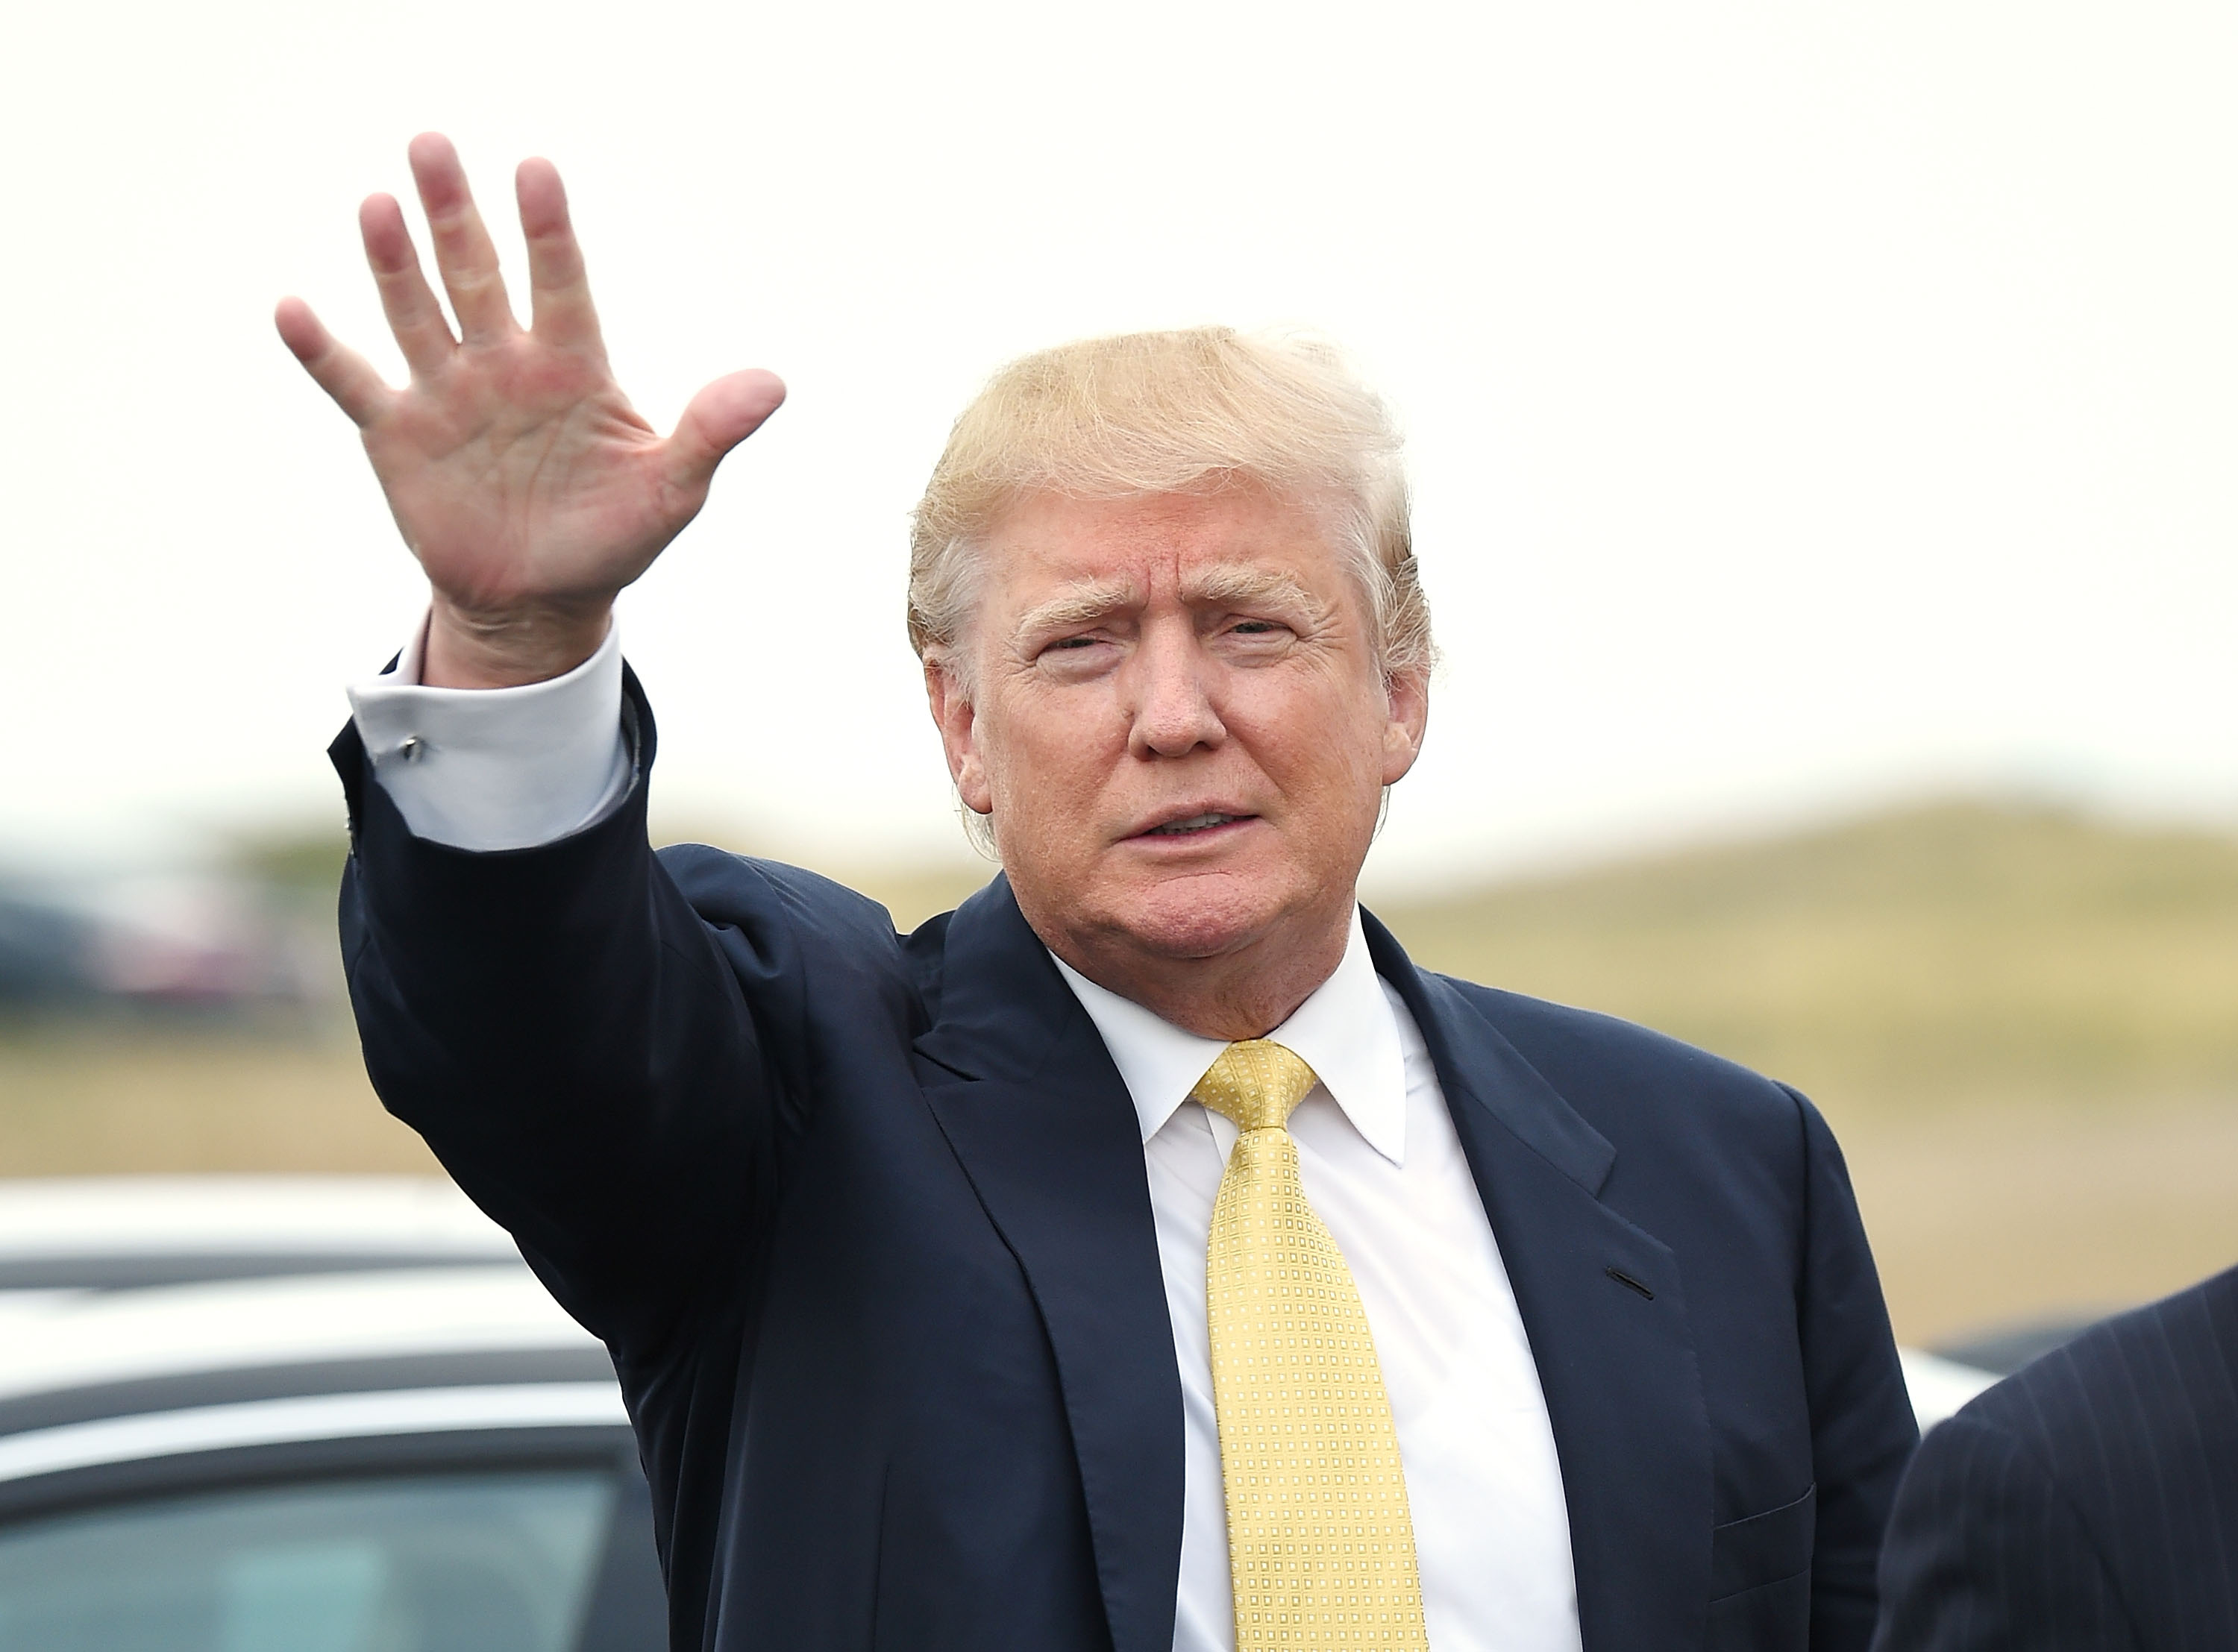 Donald Trump attends the 2015 Hank's Yanks Golf Classic at Trump Golf Links Ferry Point on July 6, 2015, in New York City.